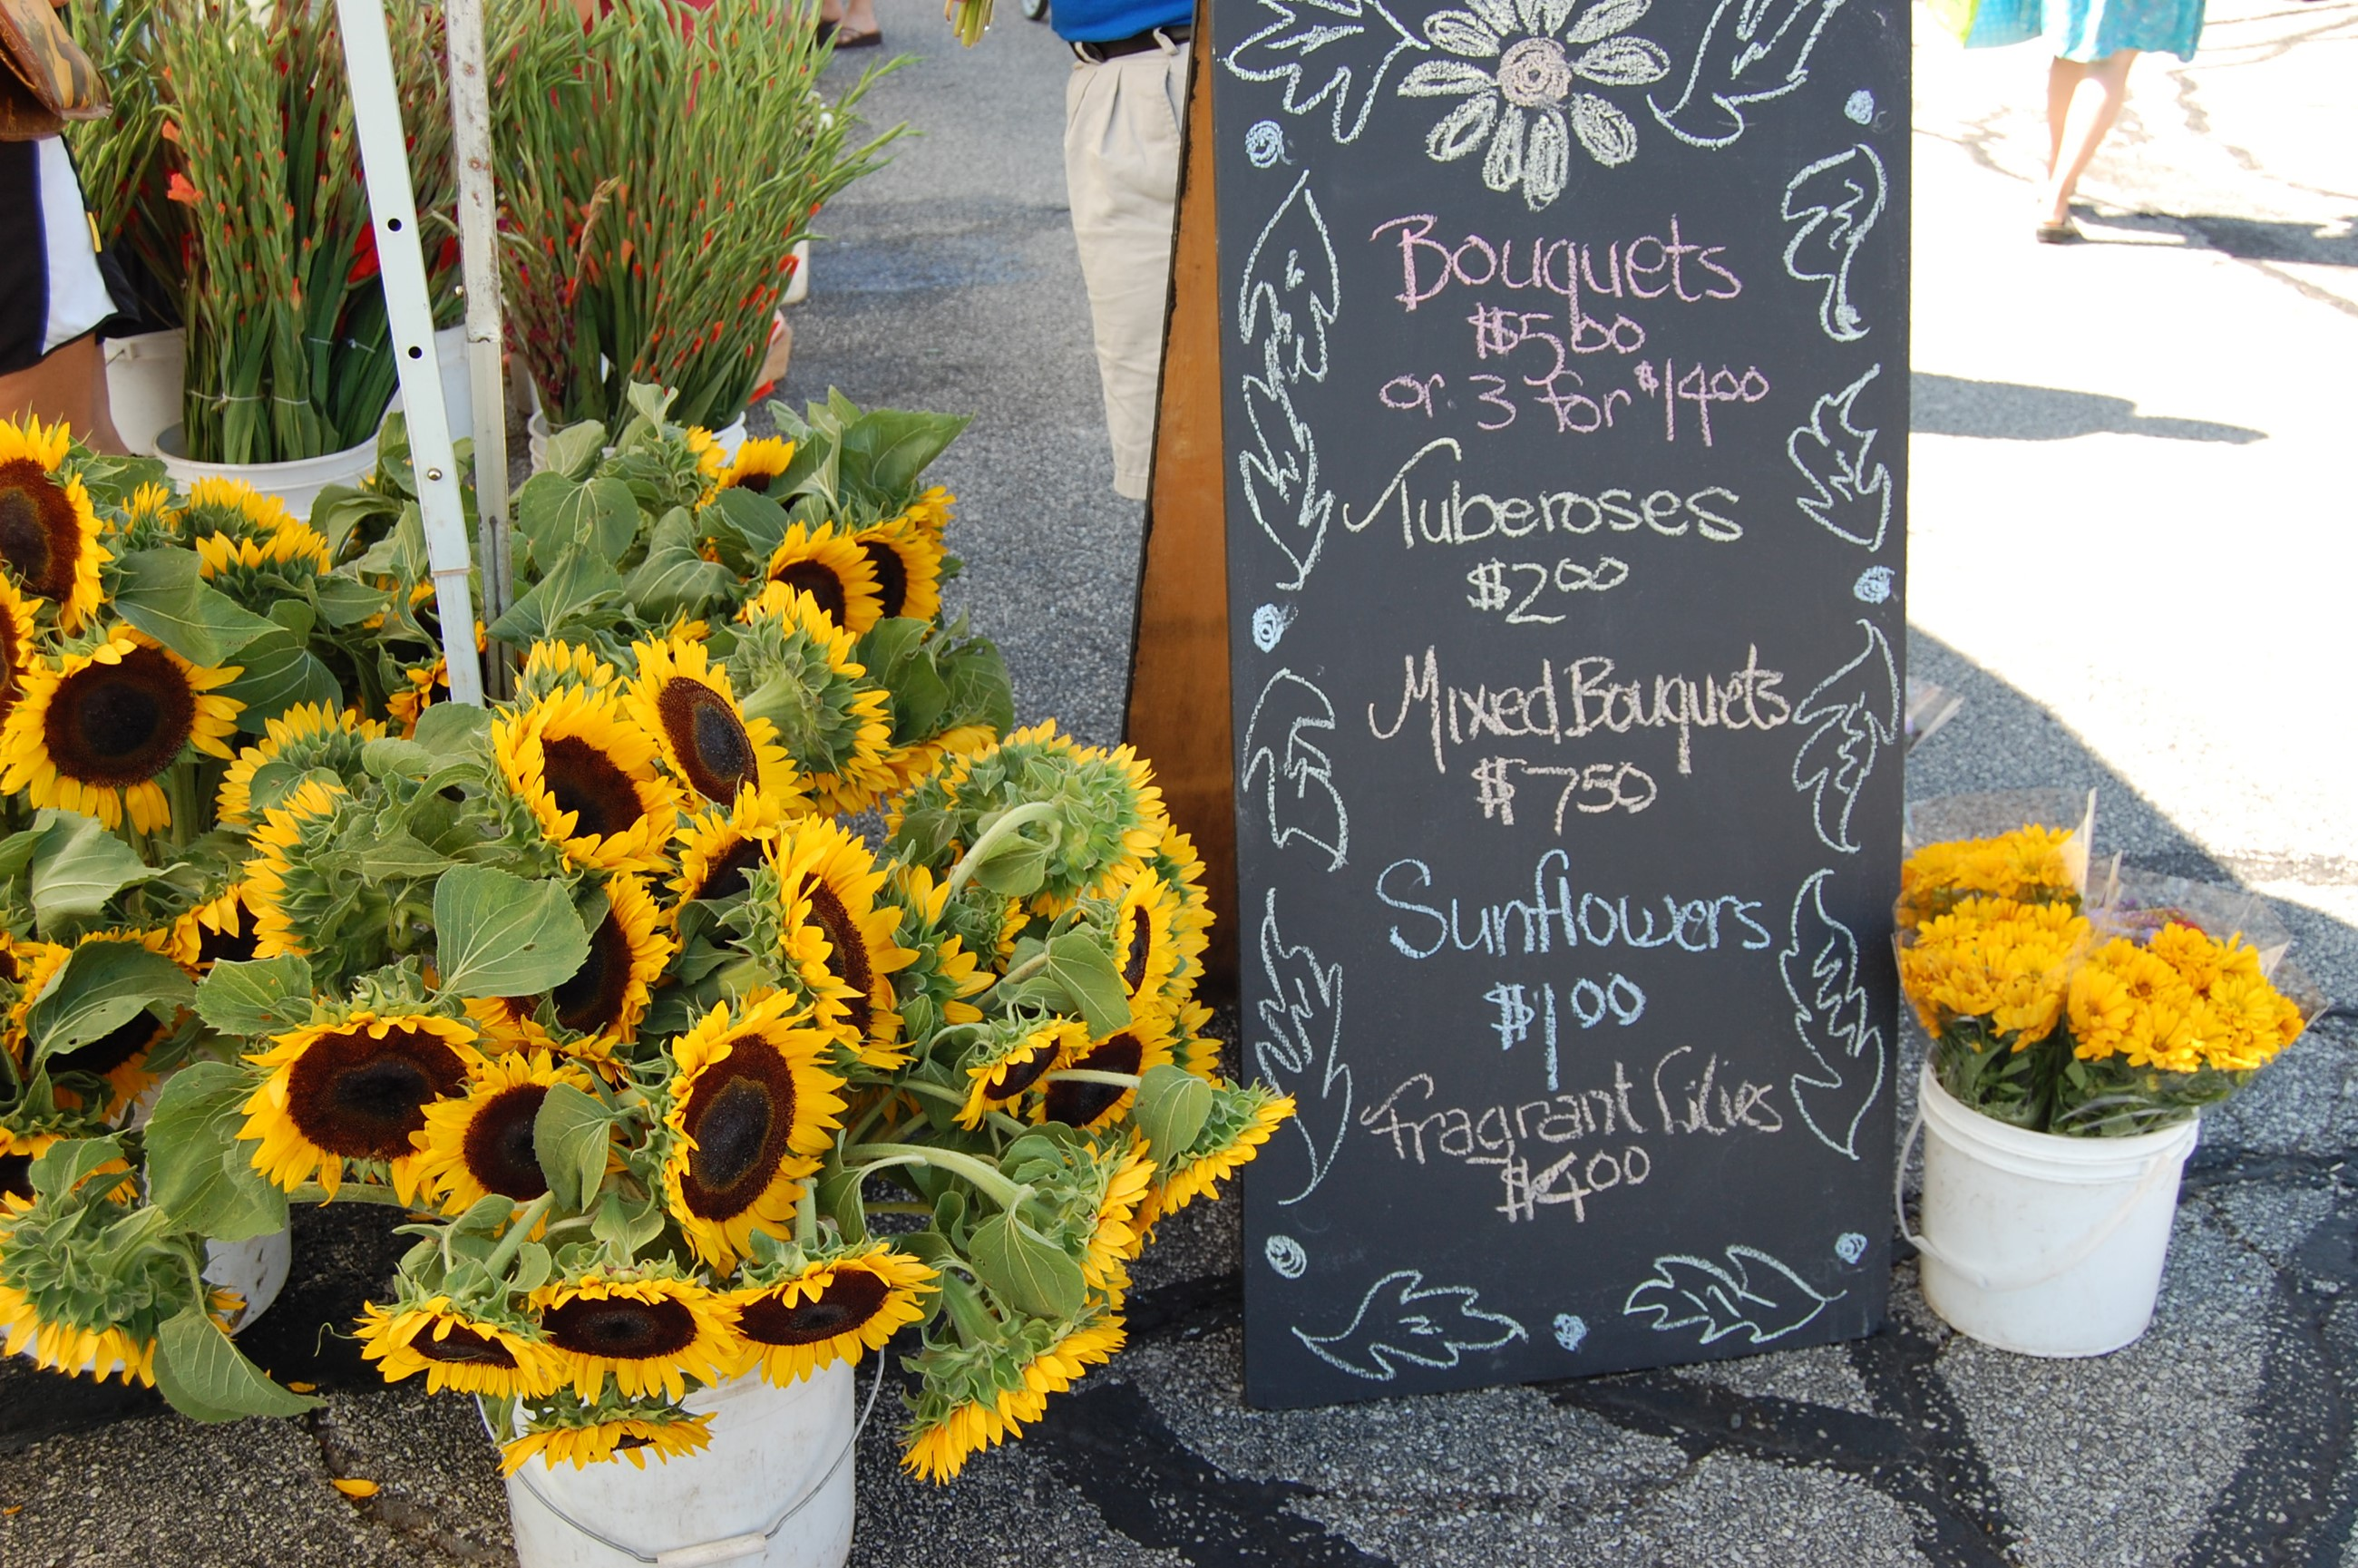 Sunflower bouquet next to market sign